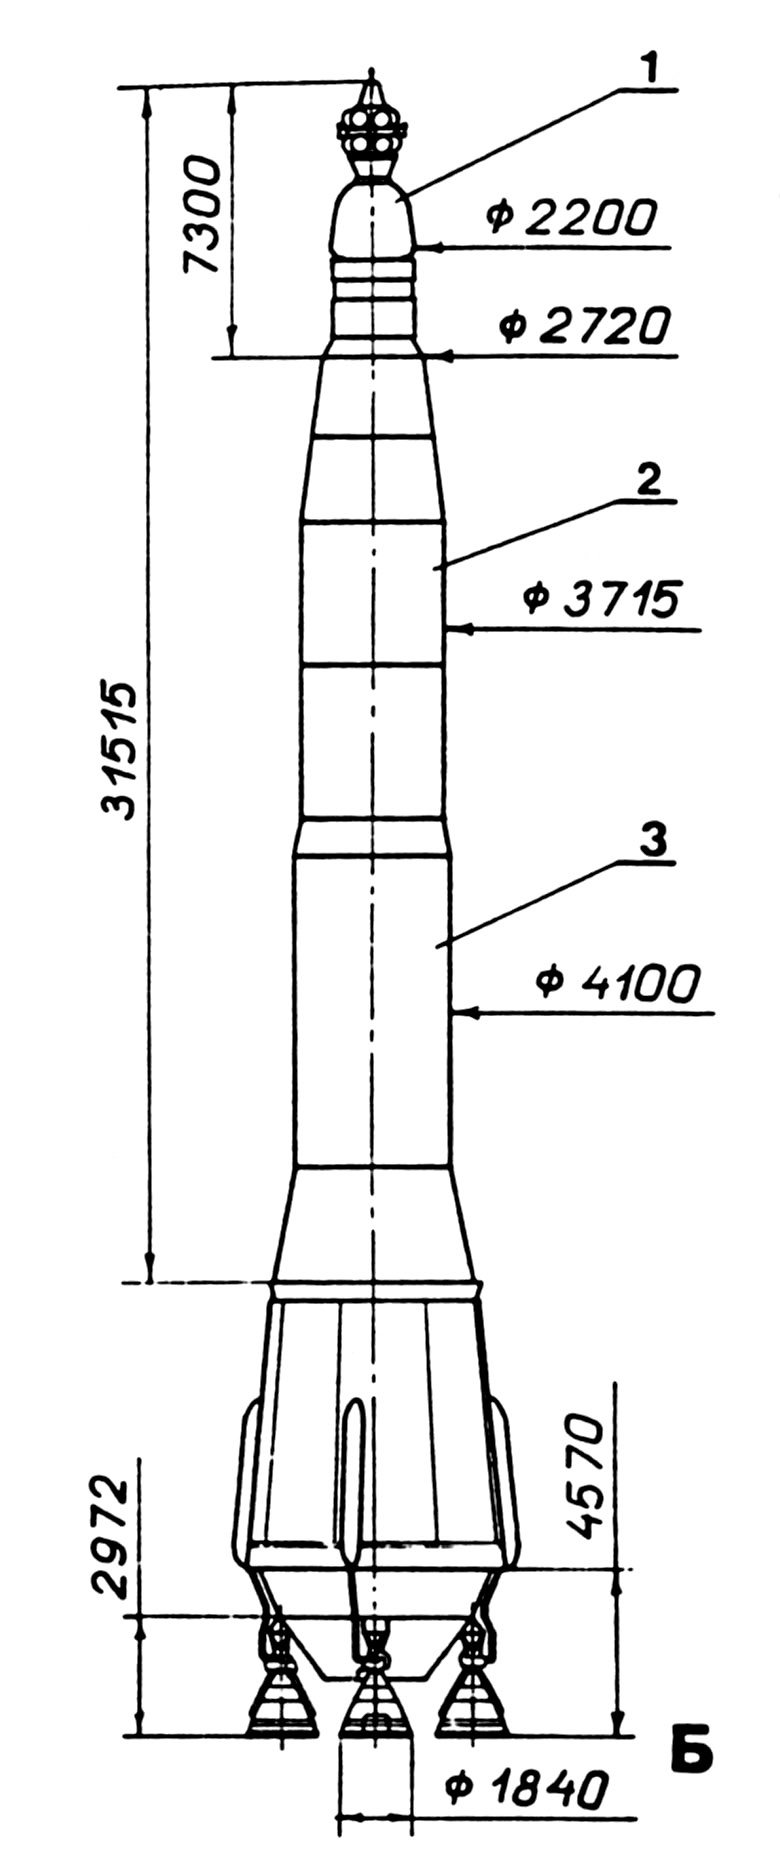 medium resolution of models of the n1 l3 rocket can be found on the web here are some links to n1 l3 models